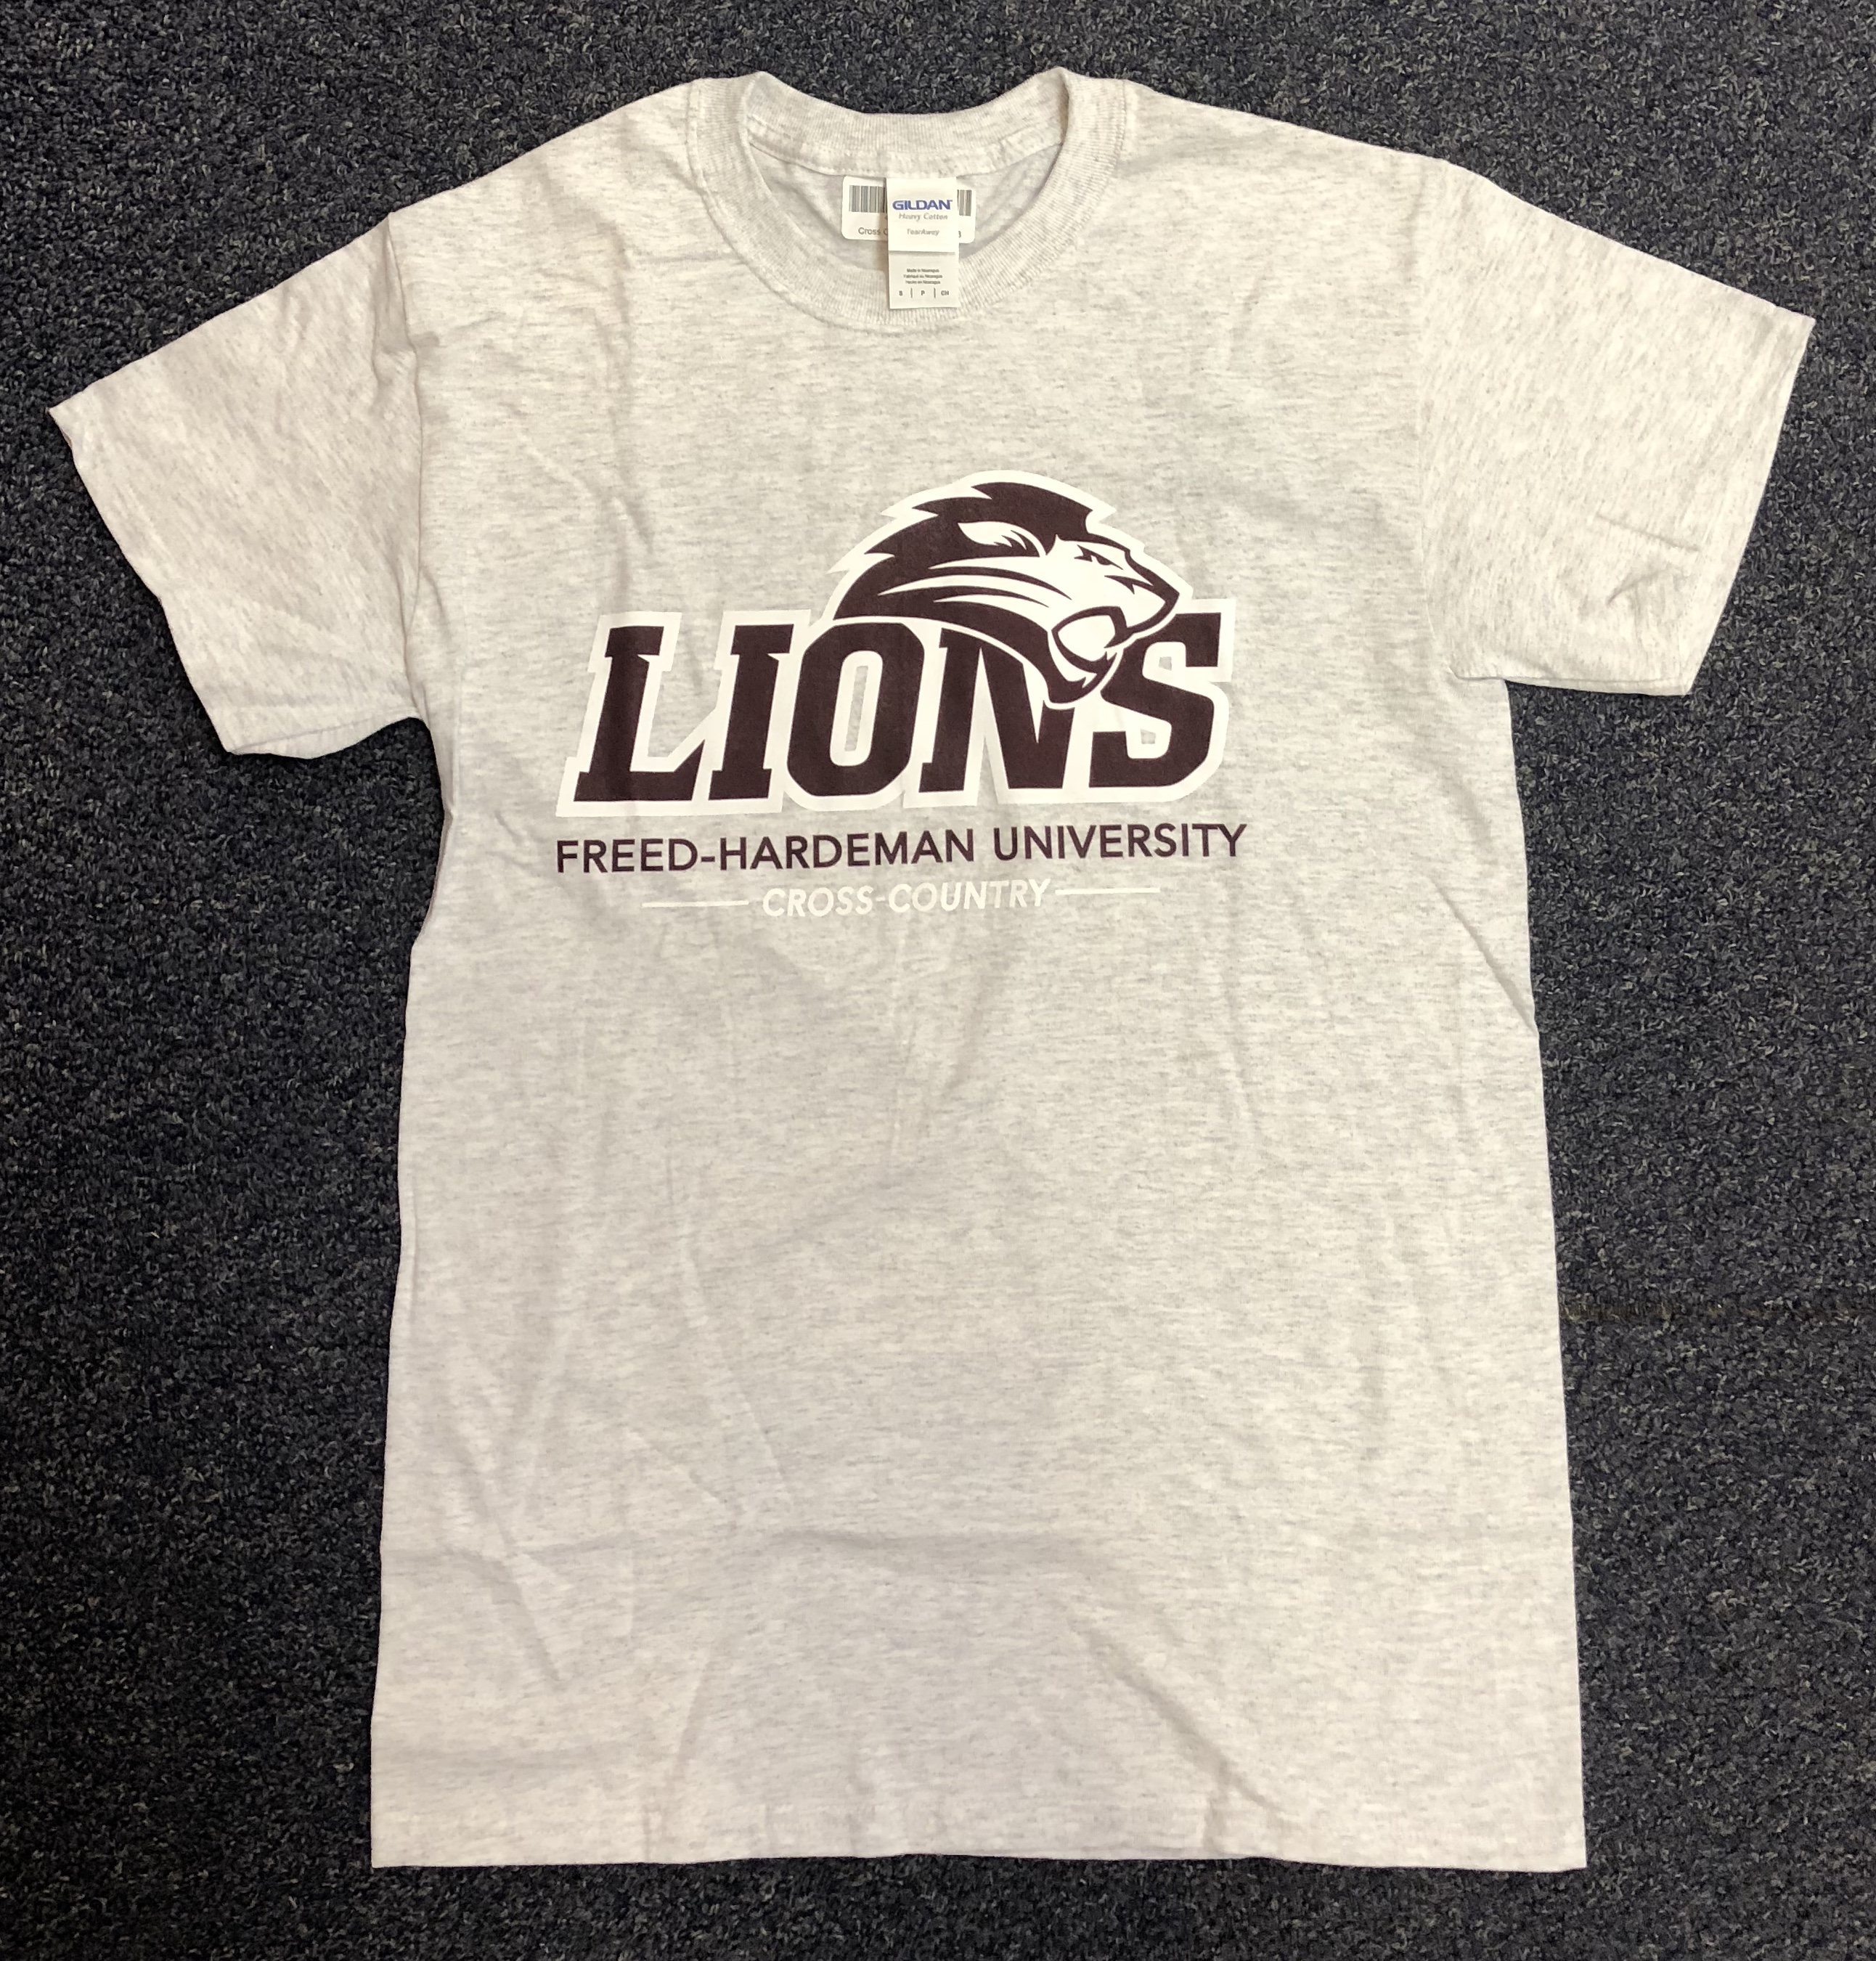 Lions Cross-Country Tee